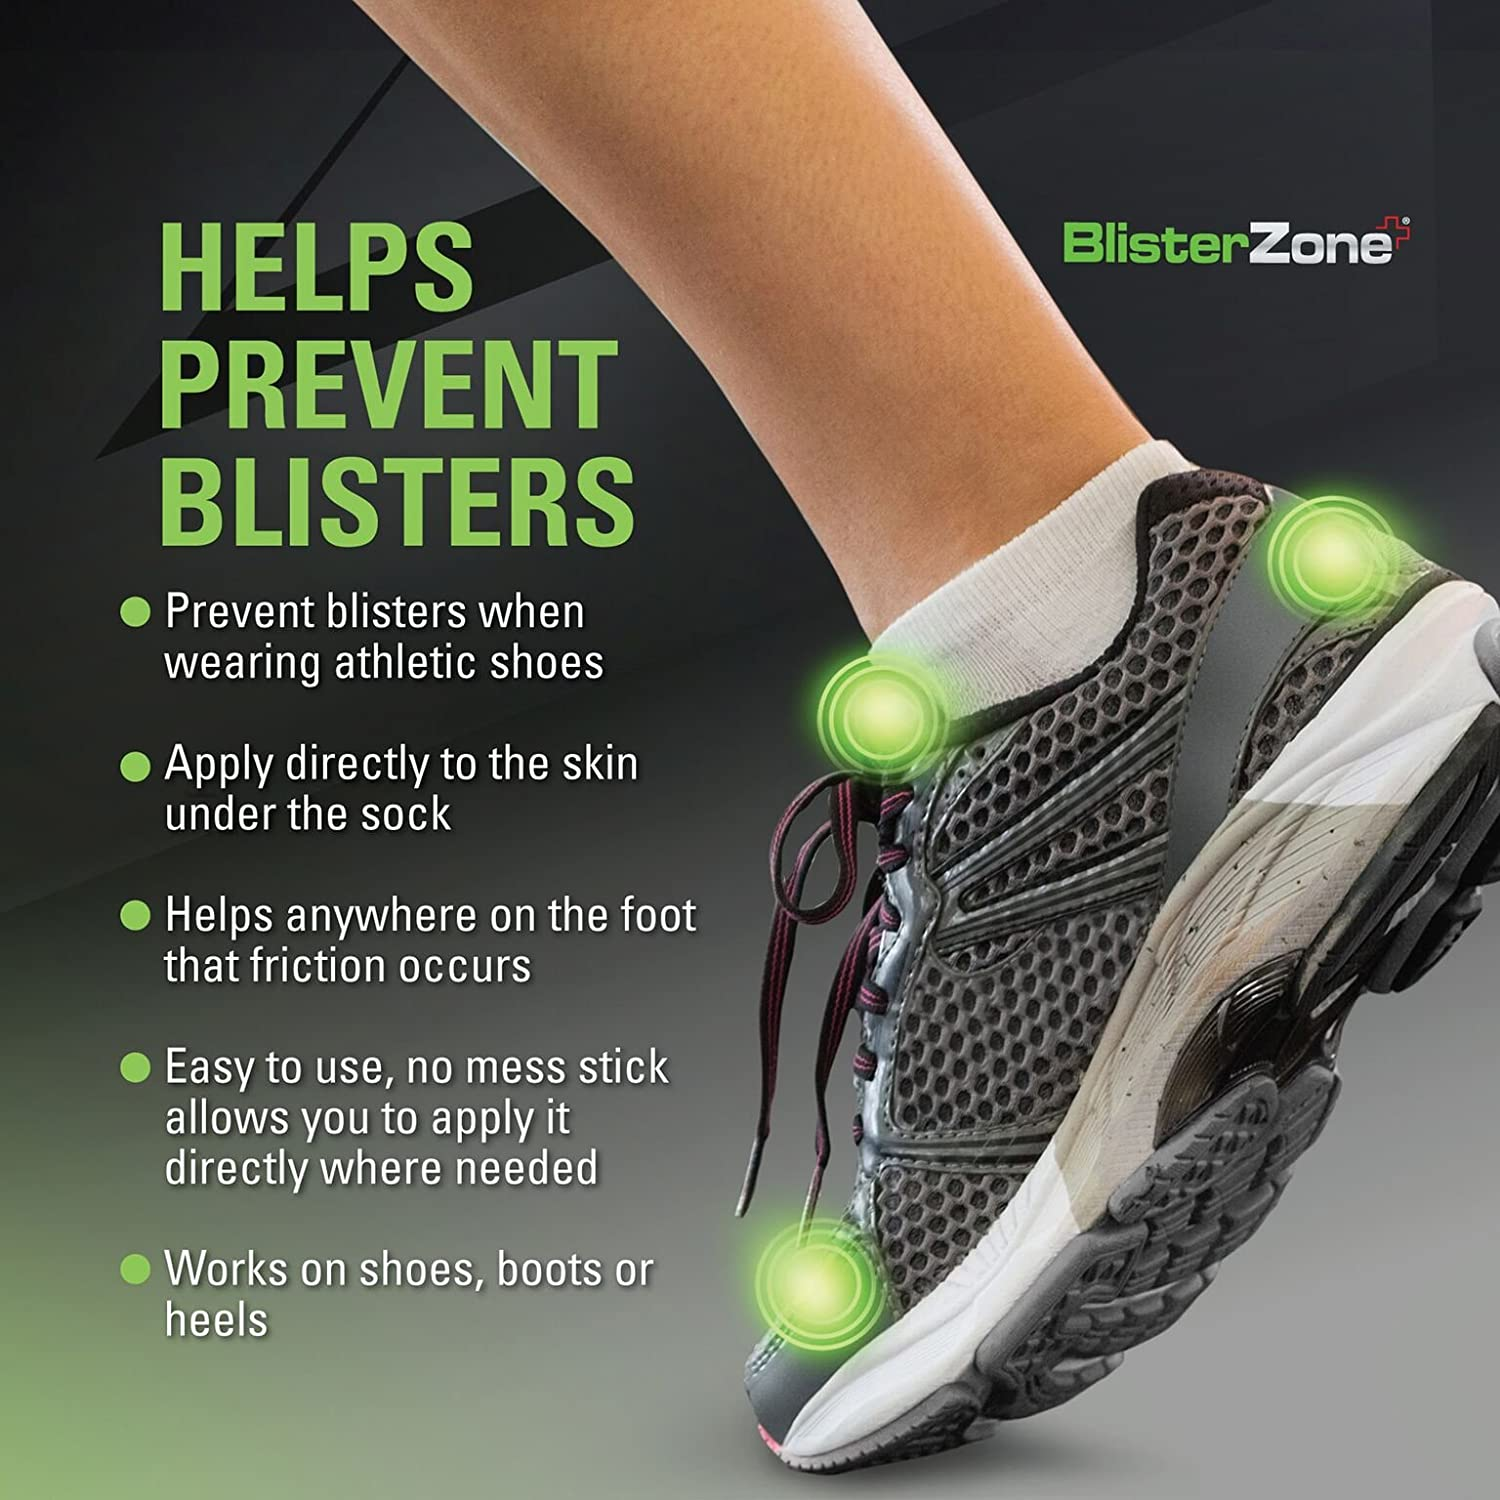 Amazon.com: BlisterZone MedZone Skin Protectant Foot Blister Gel Anti-Chafe Foot Blister Protectant - 1/8 oz (3.5gm) 75 Count: Health & Personal Care